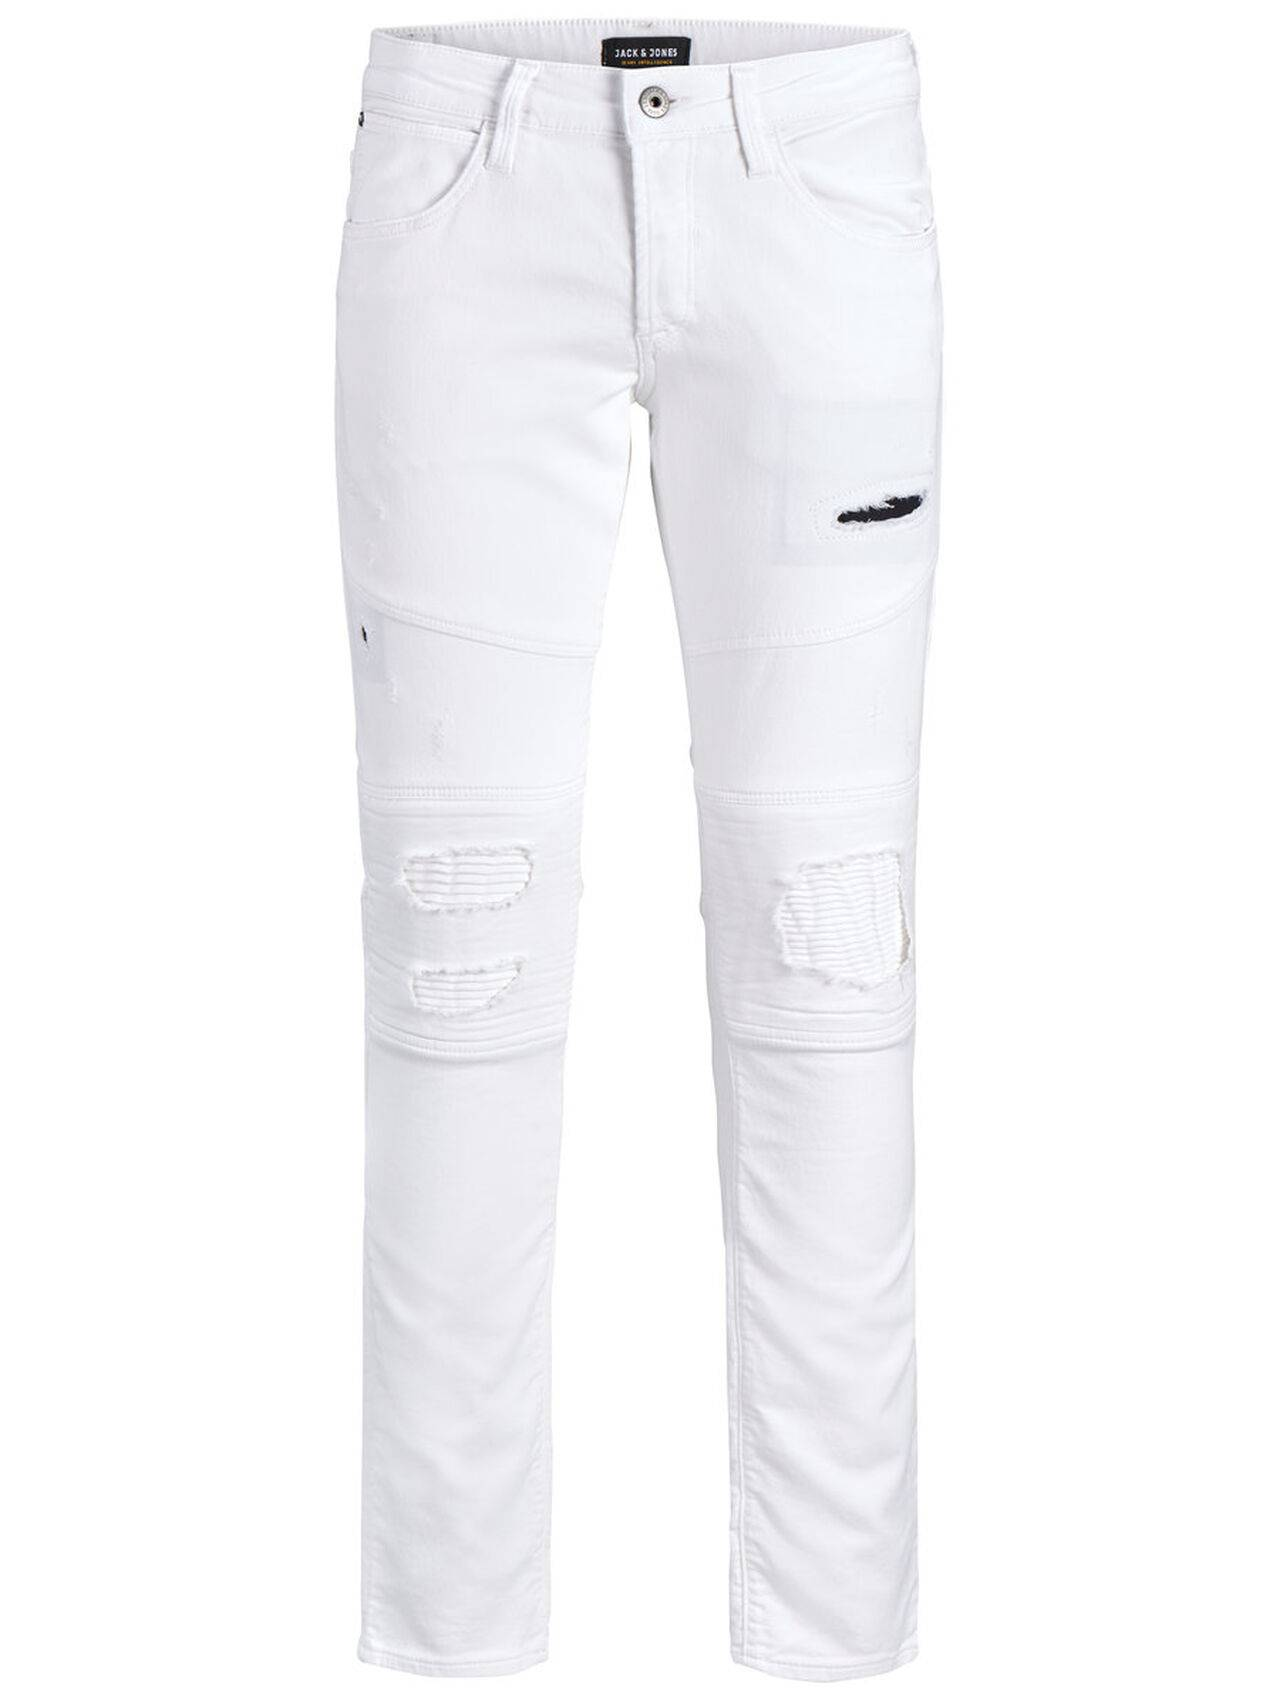 JACK & JONES Glenn Jaxx Biker Blanc De Blanc Trousers Men White BlancdeBlanc